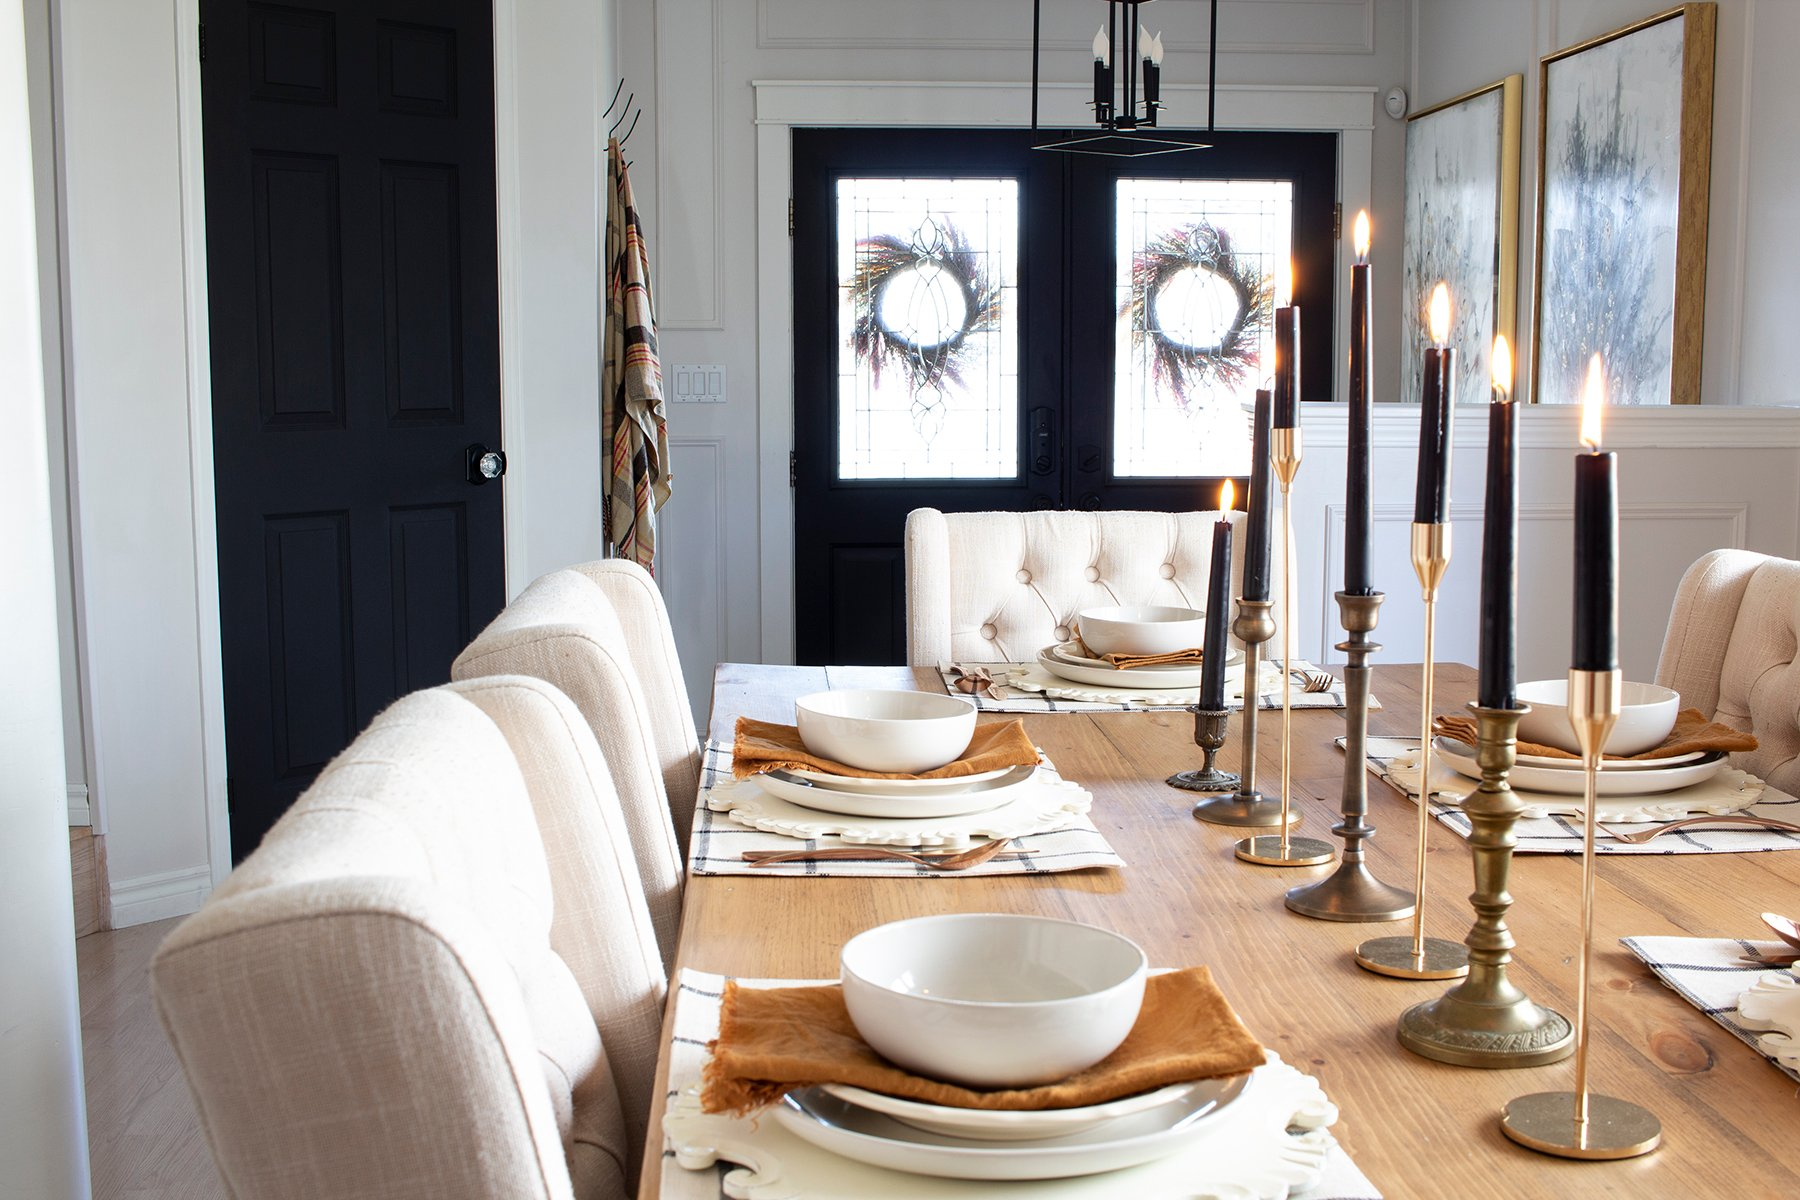 fall dining table with brass candlesticks black doors in background